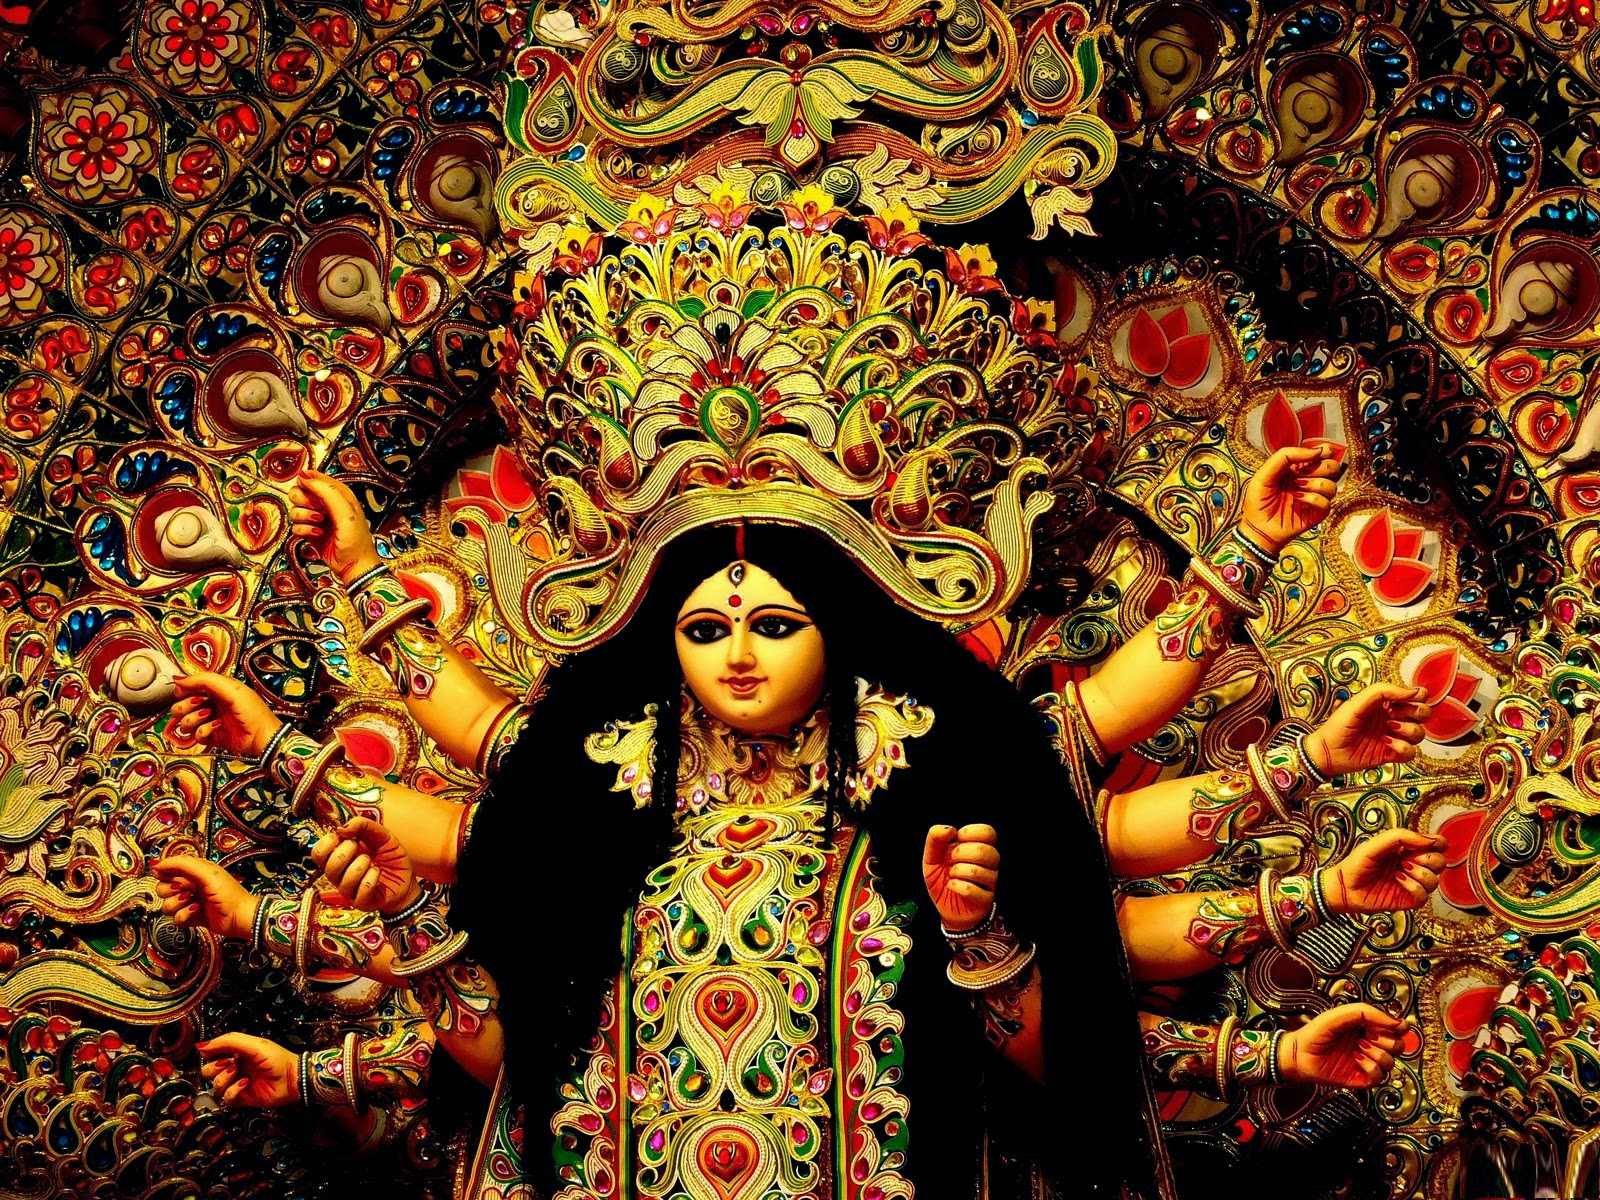 Durga Puja Hd Wallpaper: The Festival Of Home Coming Goddess Durga In